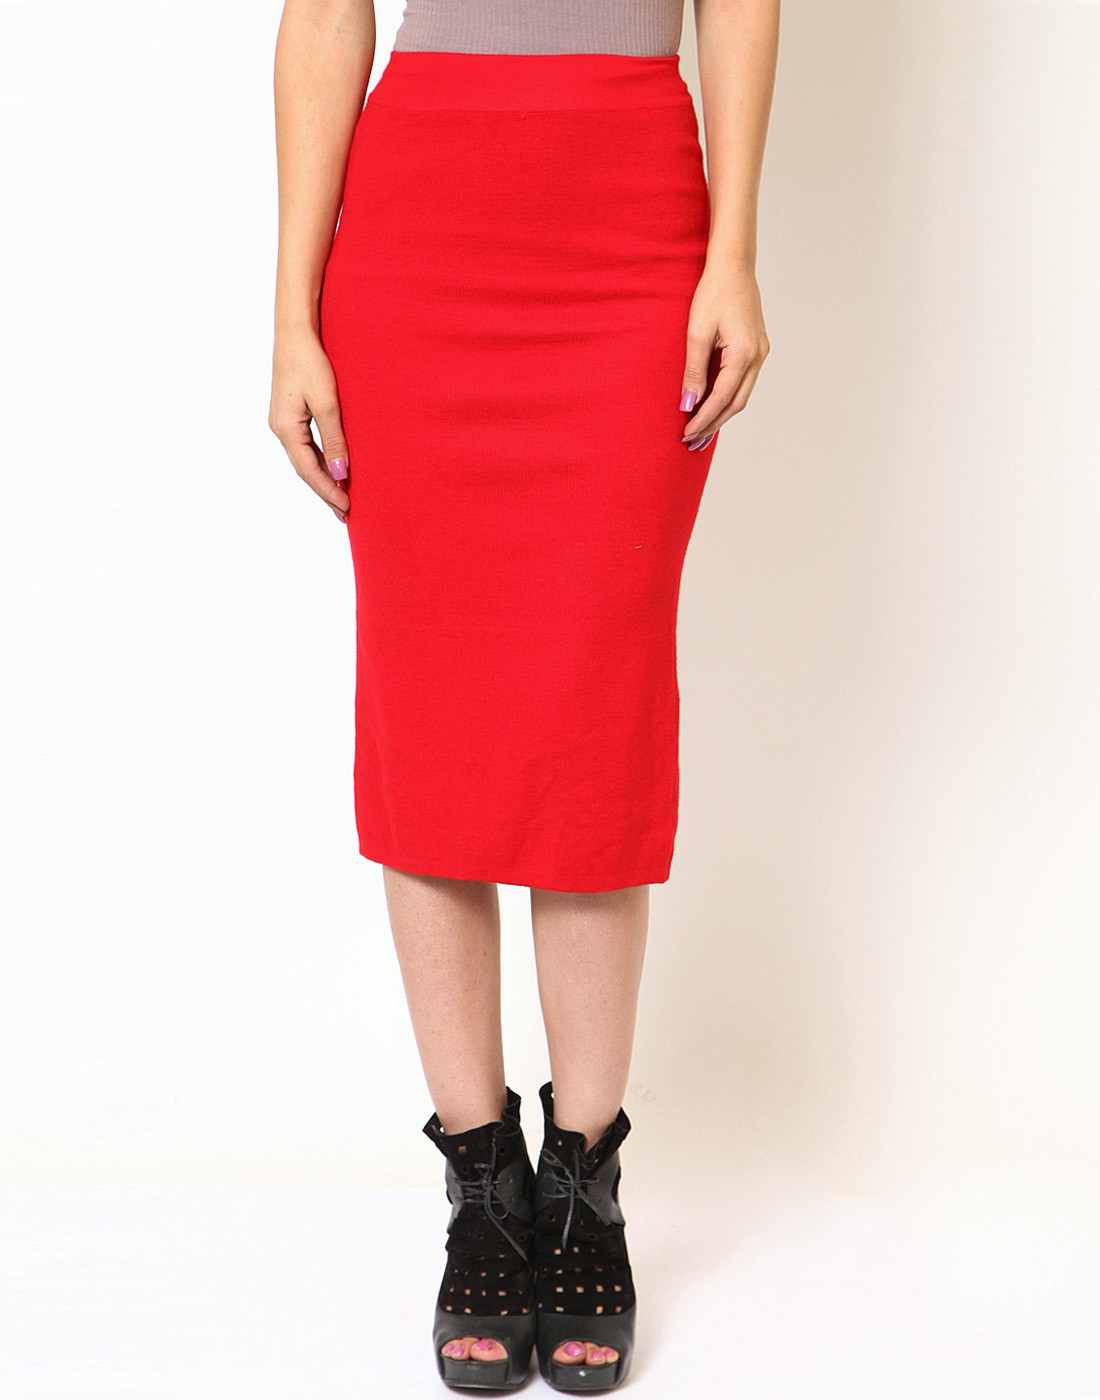 Sportelle USA India Solid Womens Pencil Red Skirt